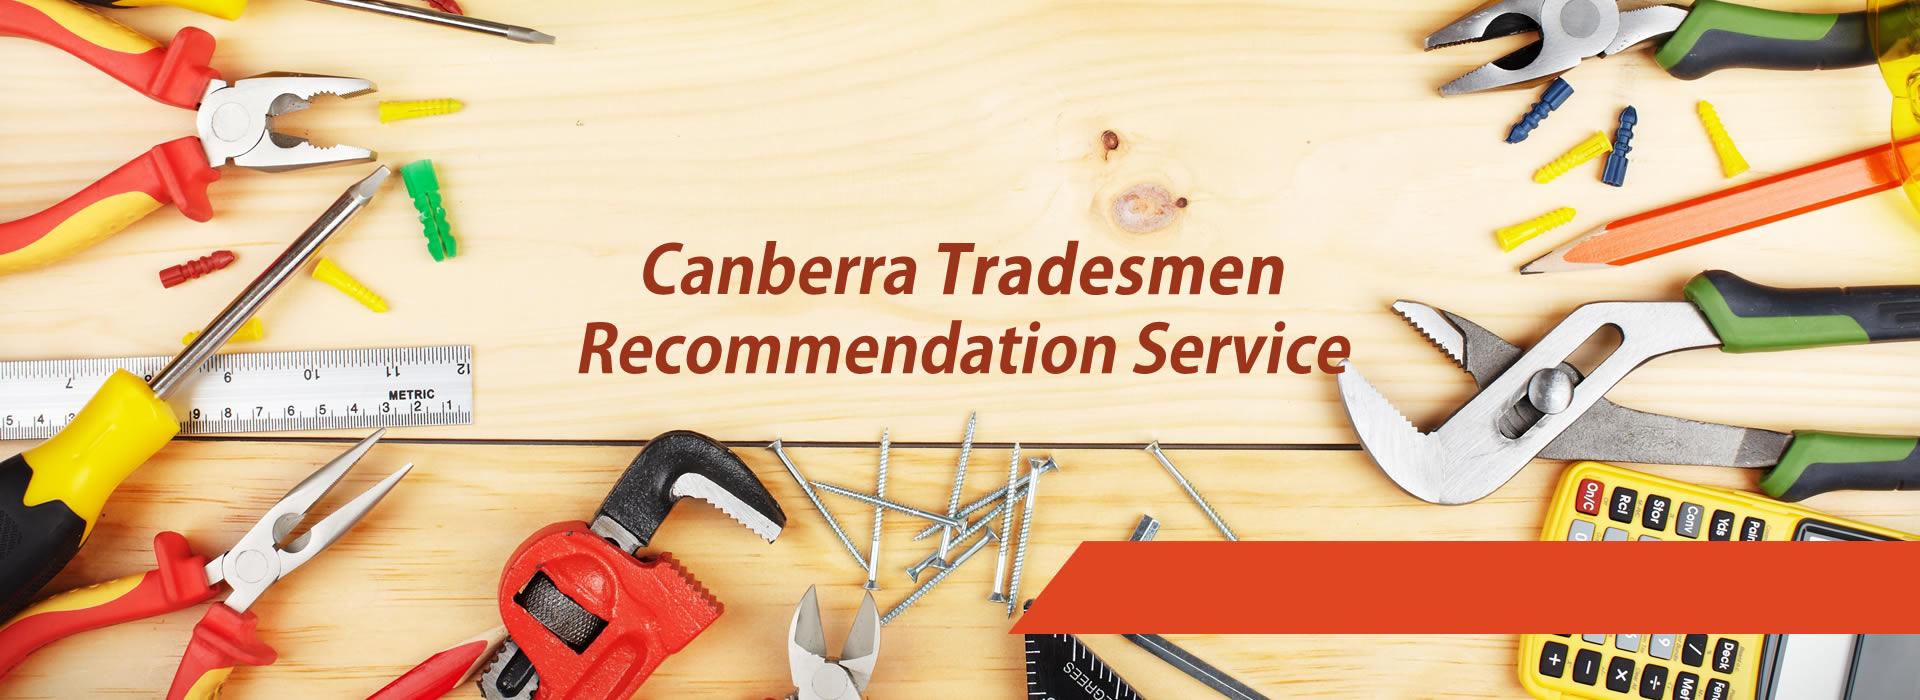 Tradesmen Directory Canberra